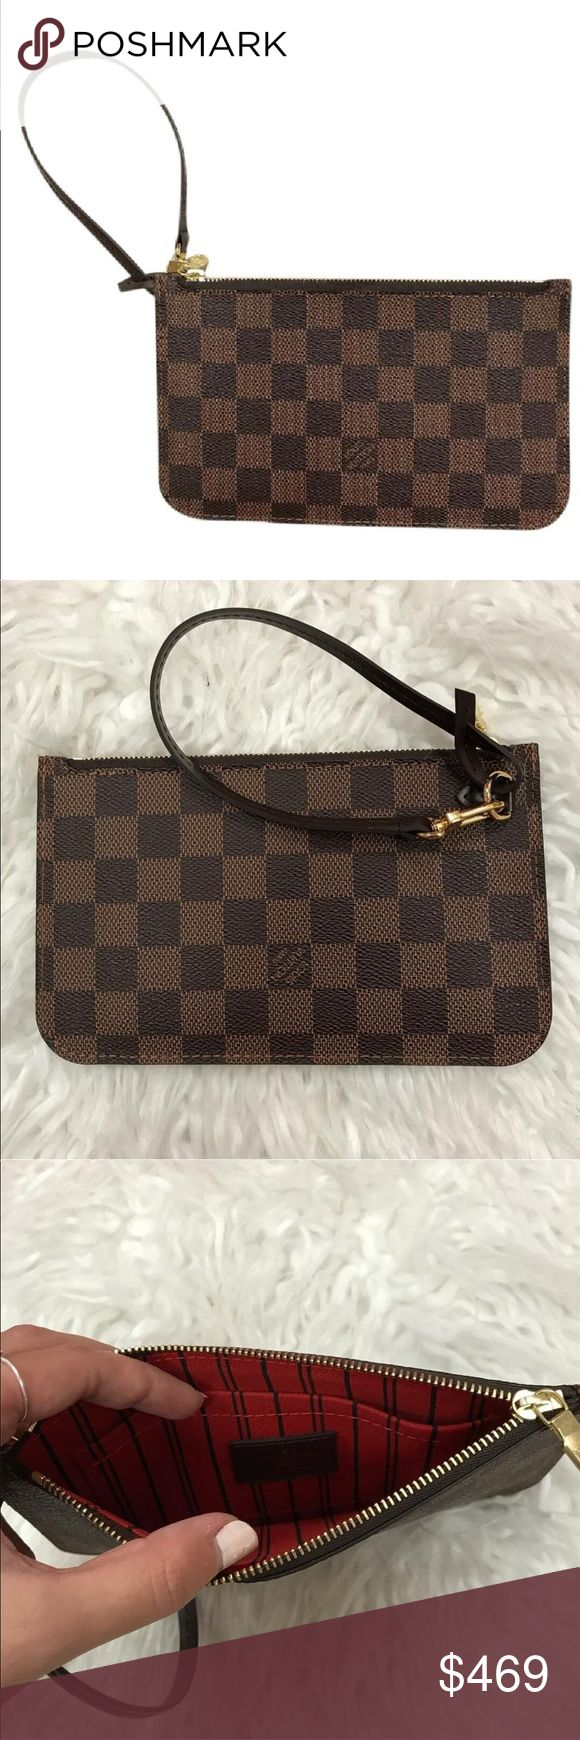 Louis Vuitton Damier Neverfull Pouchette Brand new condition - removable strap - zip closure - date code AR1166 - 7.5x4.75 - Price firm no trades - buy for less & more pics at www.chicboutiqueconsignments.com! MA's #1 designer consignment boutique! Louis Vuitton Bags Clutches & Wristlets